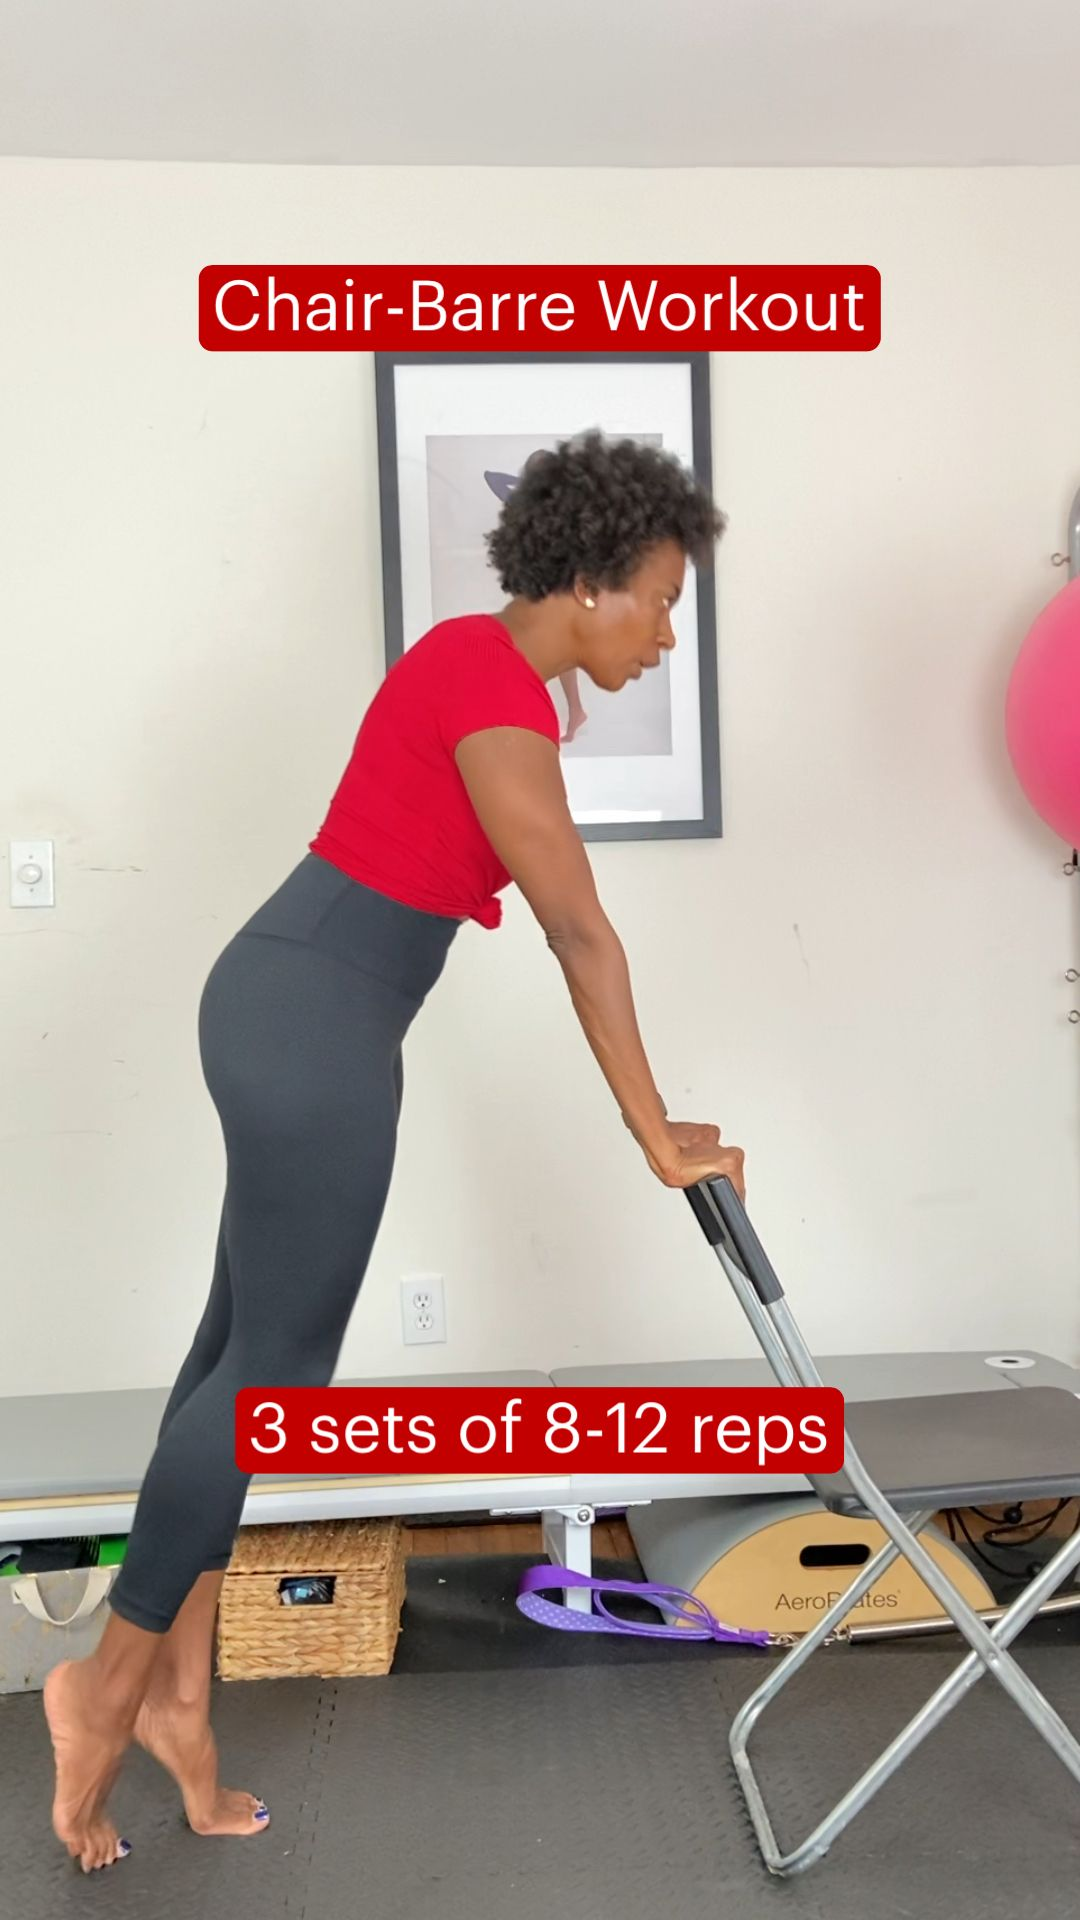 Chair-Barre Workout